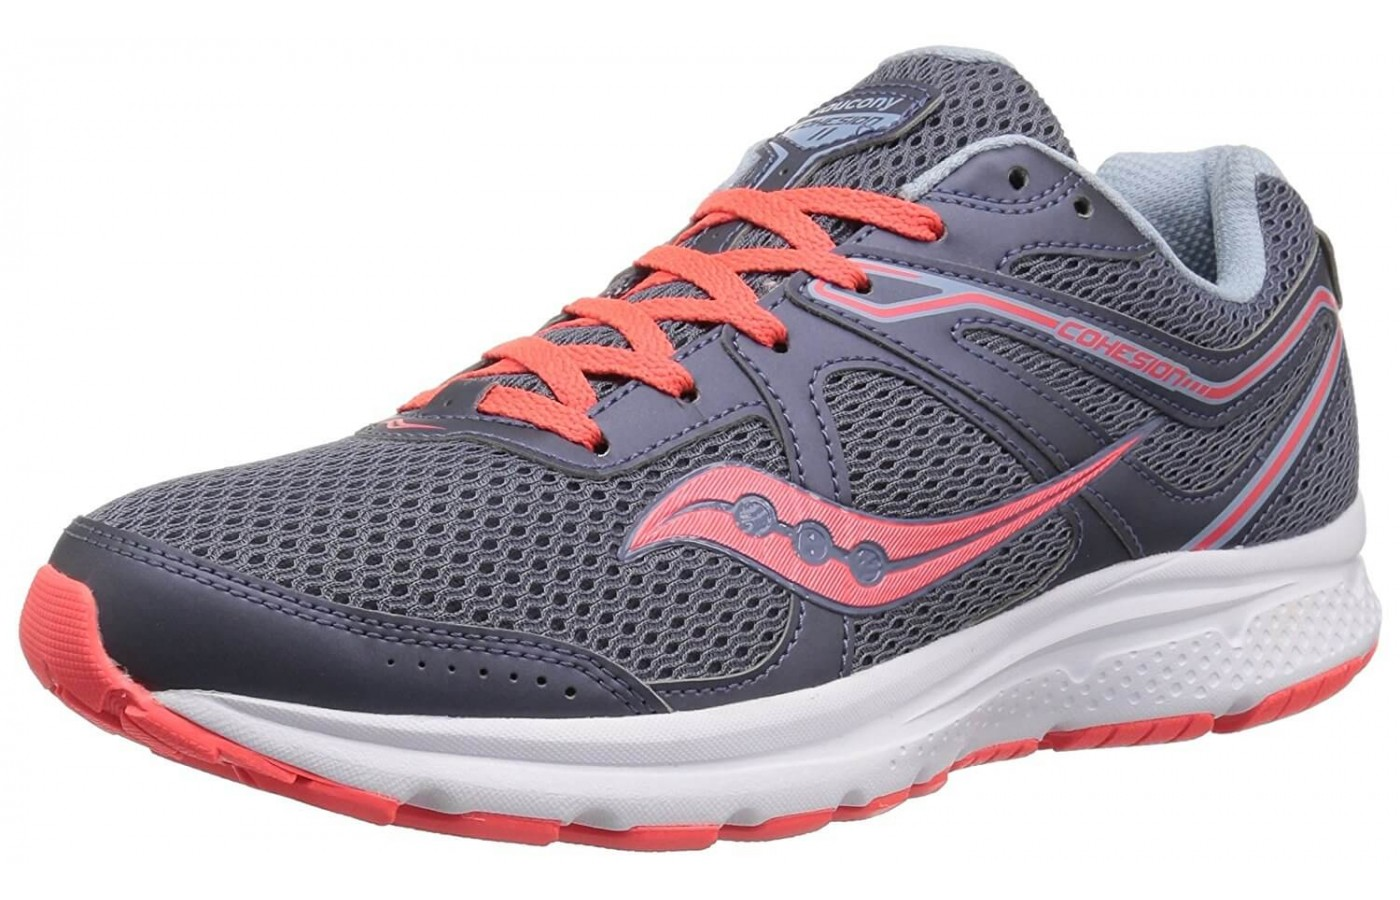 The Saucony Cohesion 11 features a REACT2U footbed